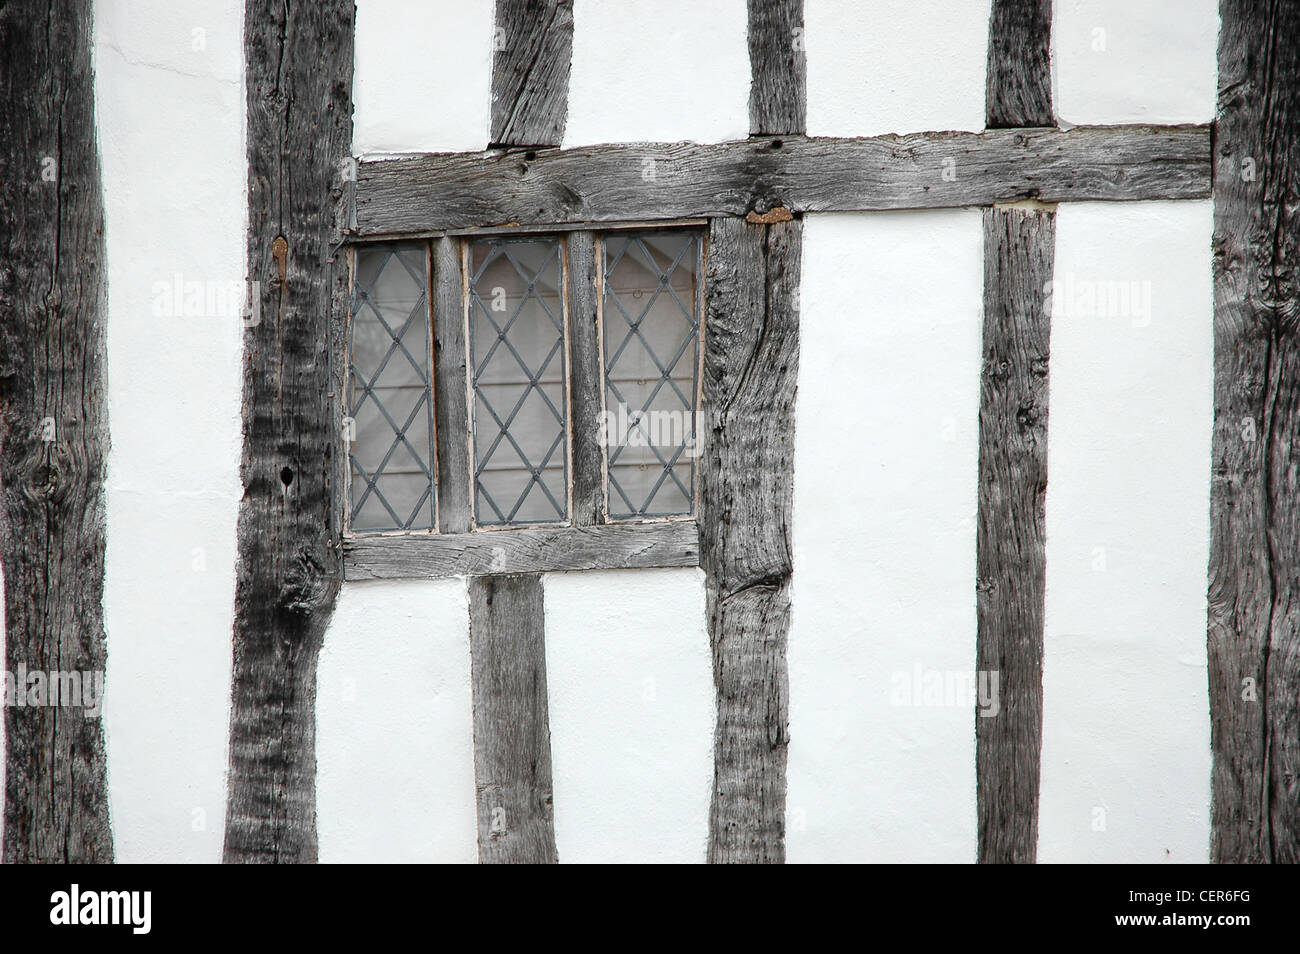 The Tudor beamed facia of a house in the Suffolk village of Lavenham. - Stock Image